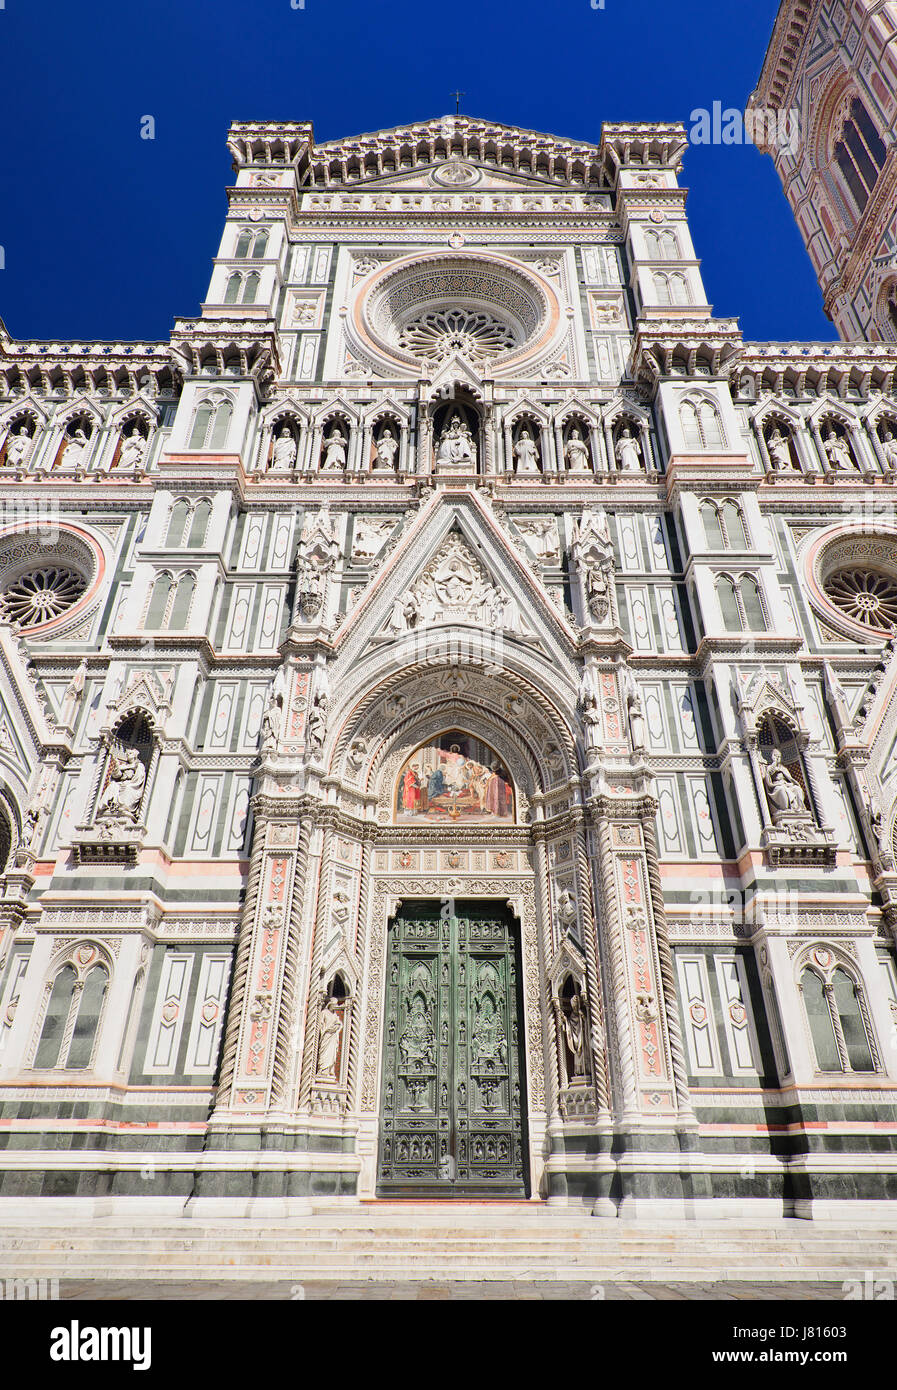 Italy, Tuscany, Florence, Duomo or Cathedral also known as Santa Maria del Fiorel, Doorway. - Stock Image